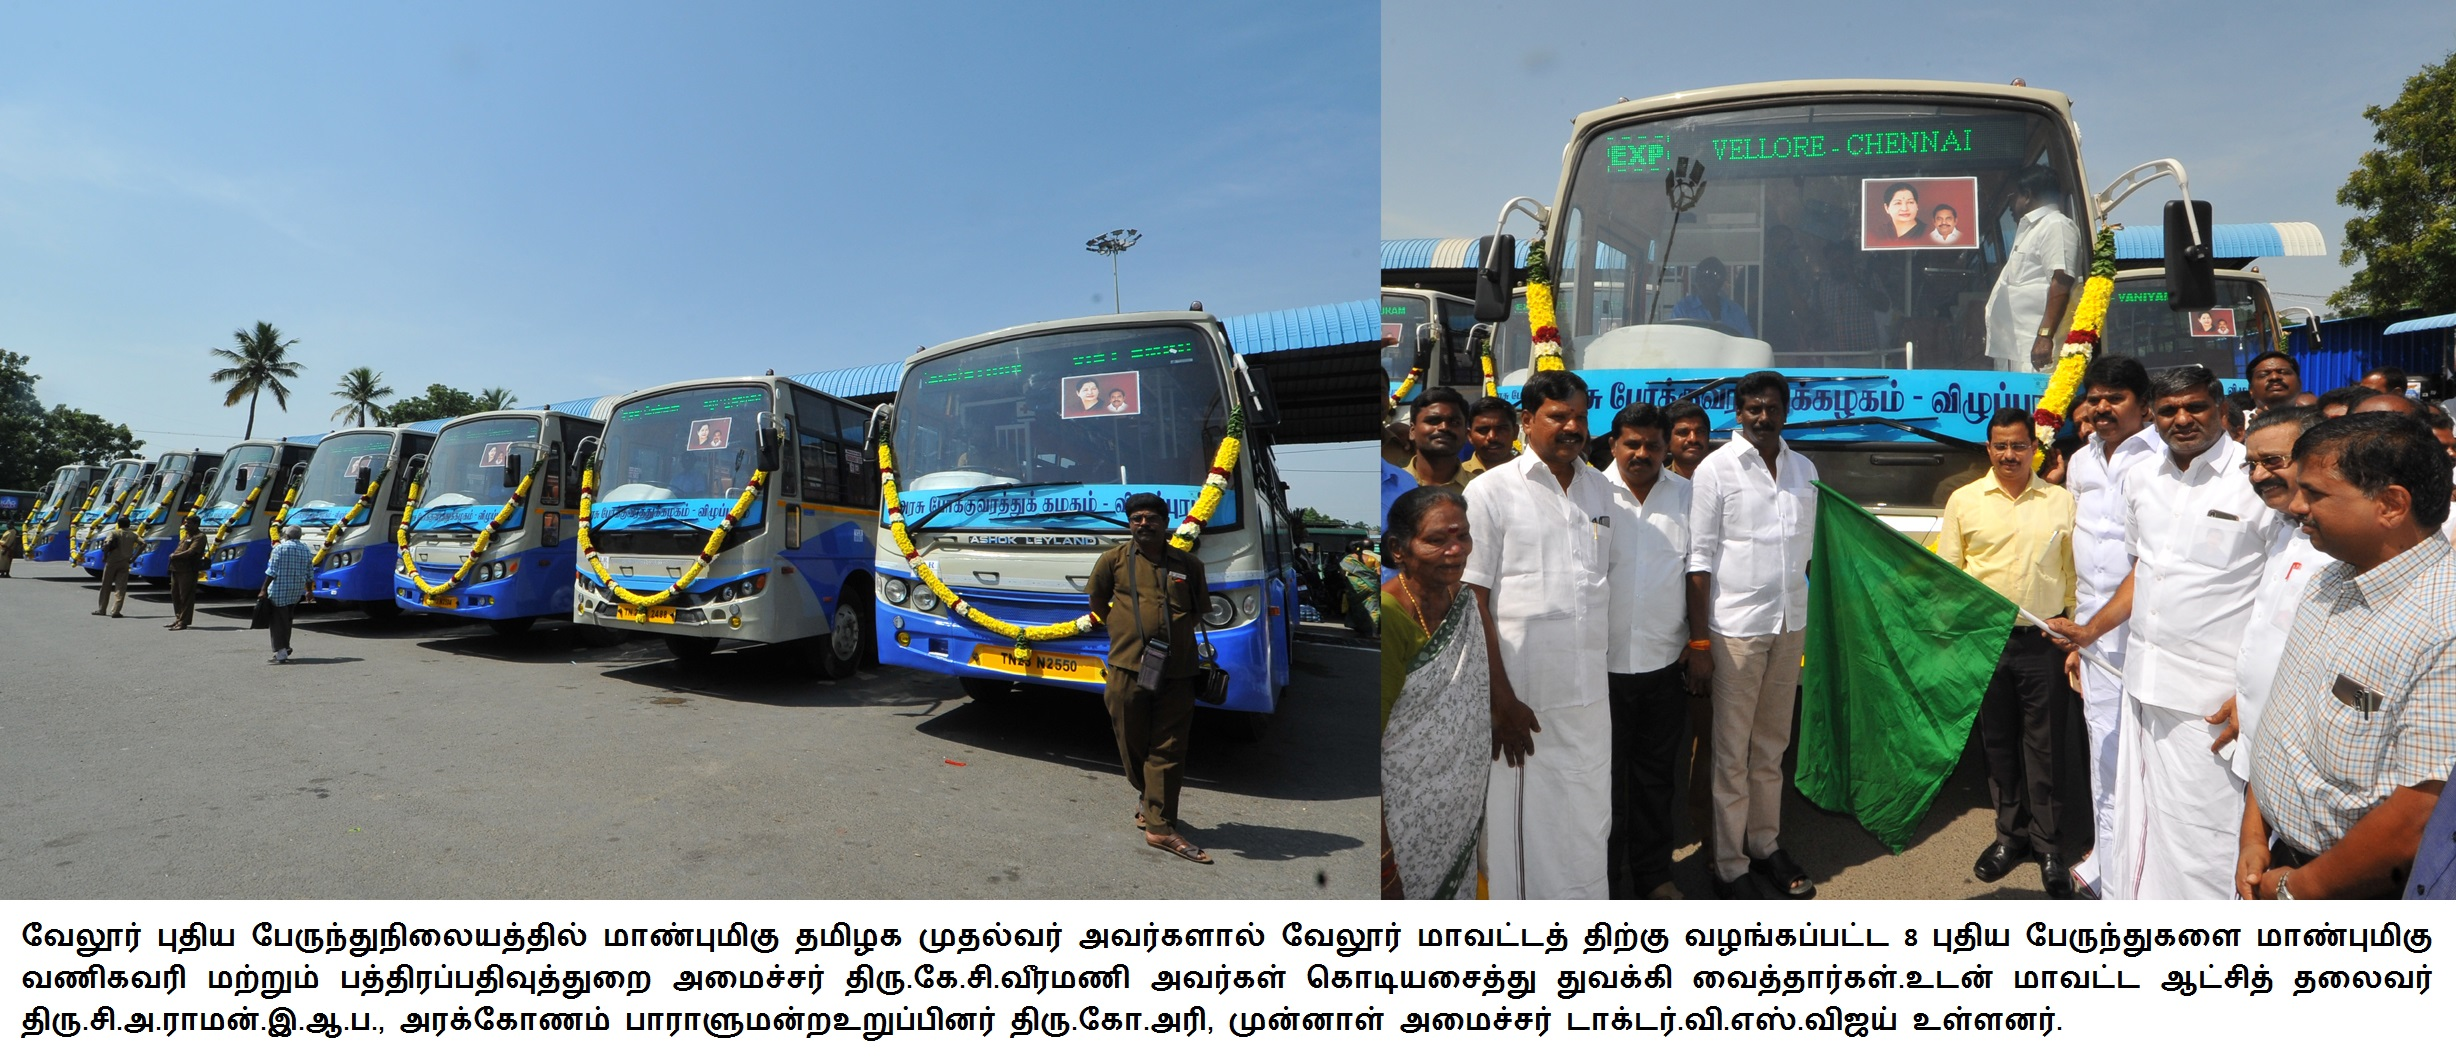 New buses inauguration 11/10/2018